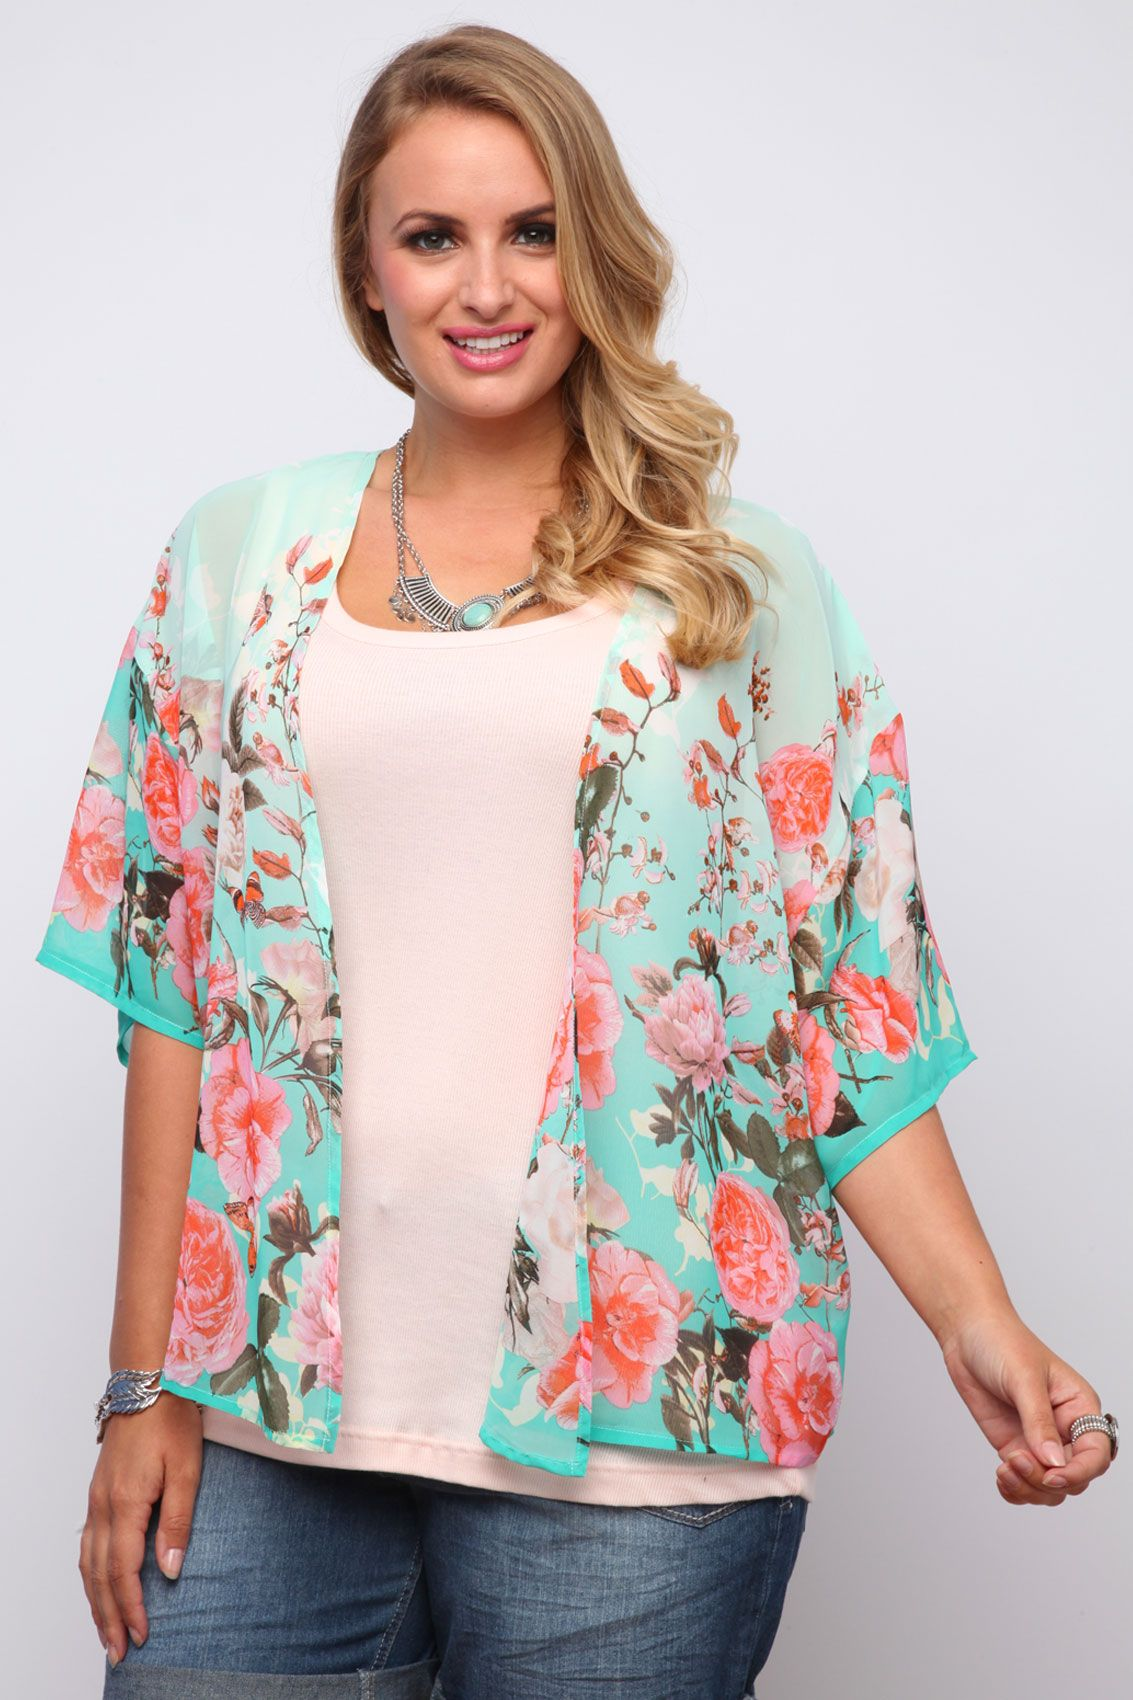 Mint And Coral Floral Rose Print Sheer Georgette Kimono Shrug | Florida | Pinterest | Kimonos ...